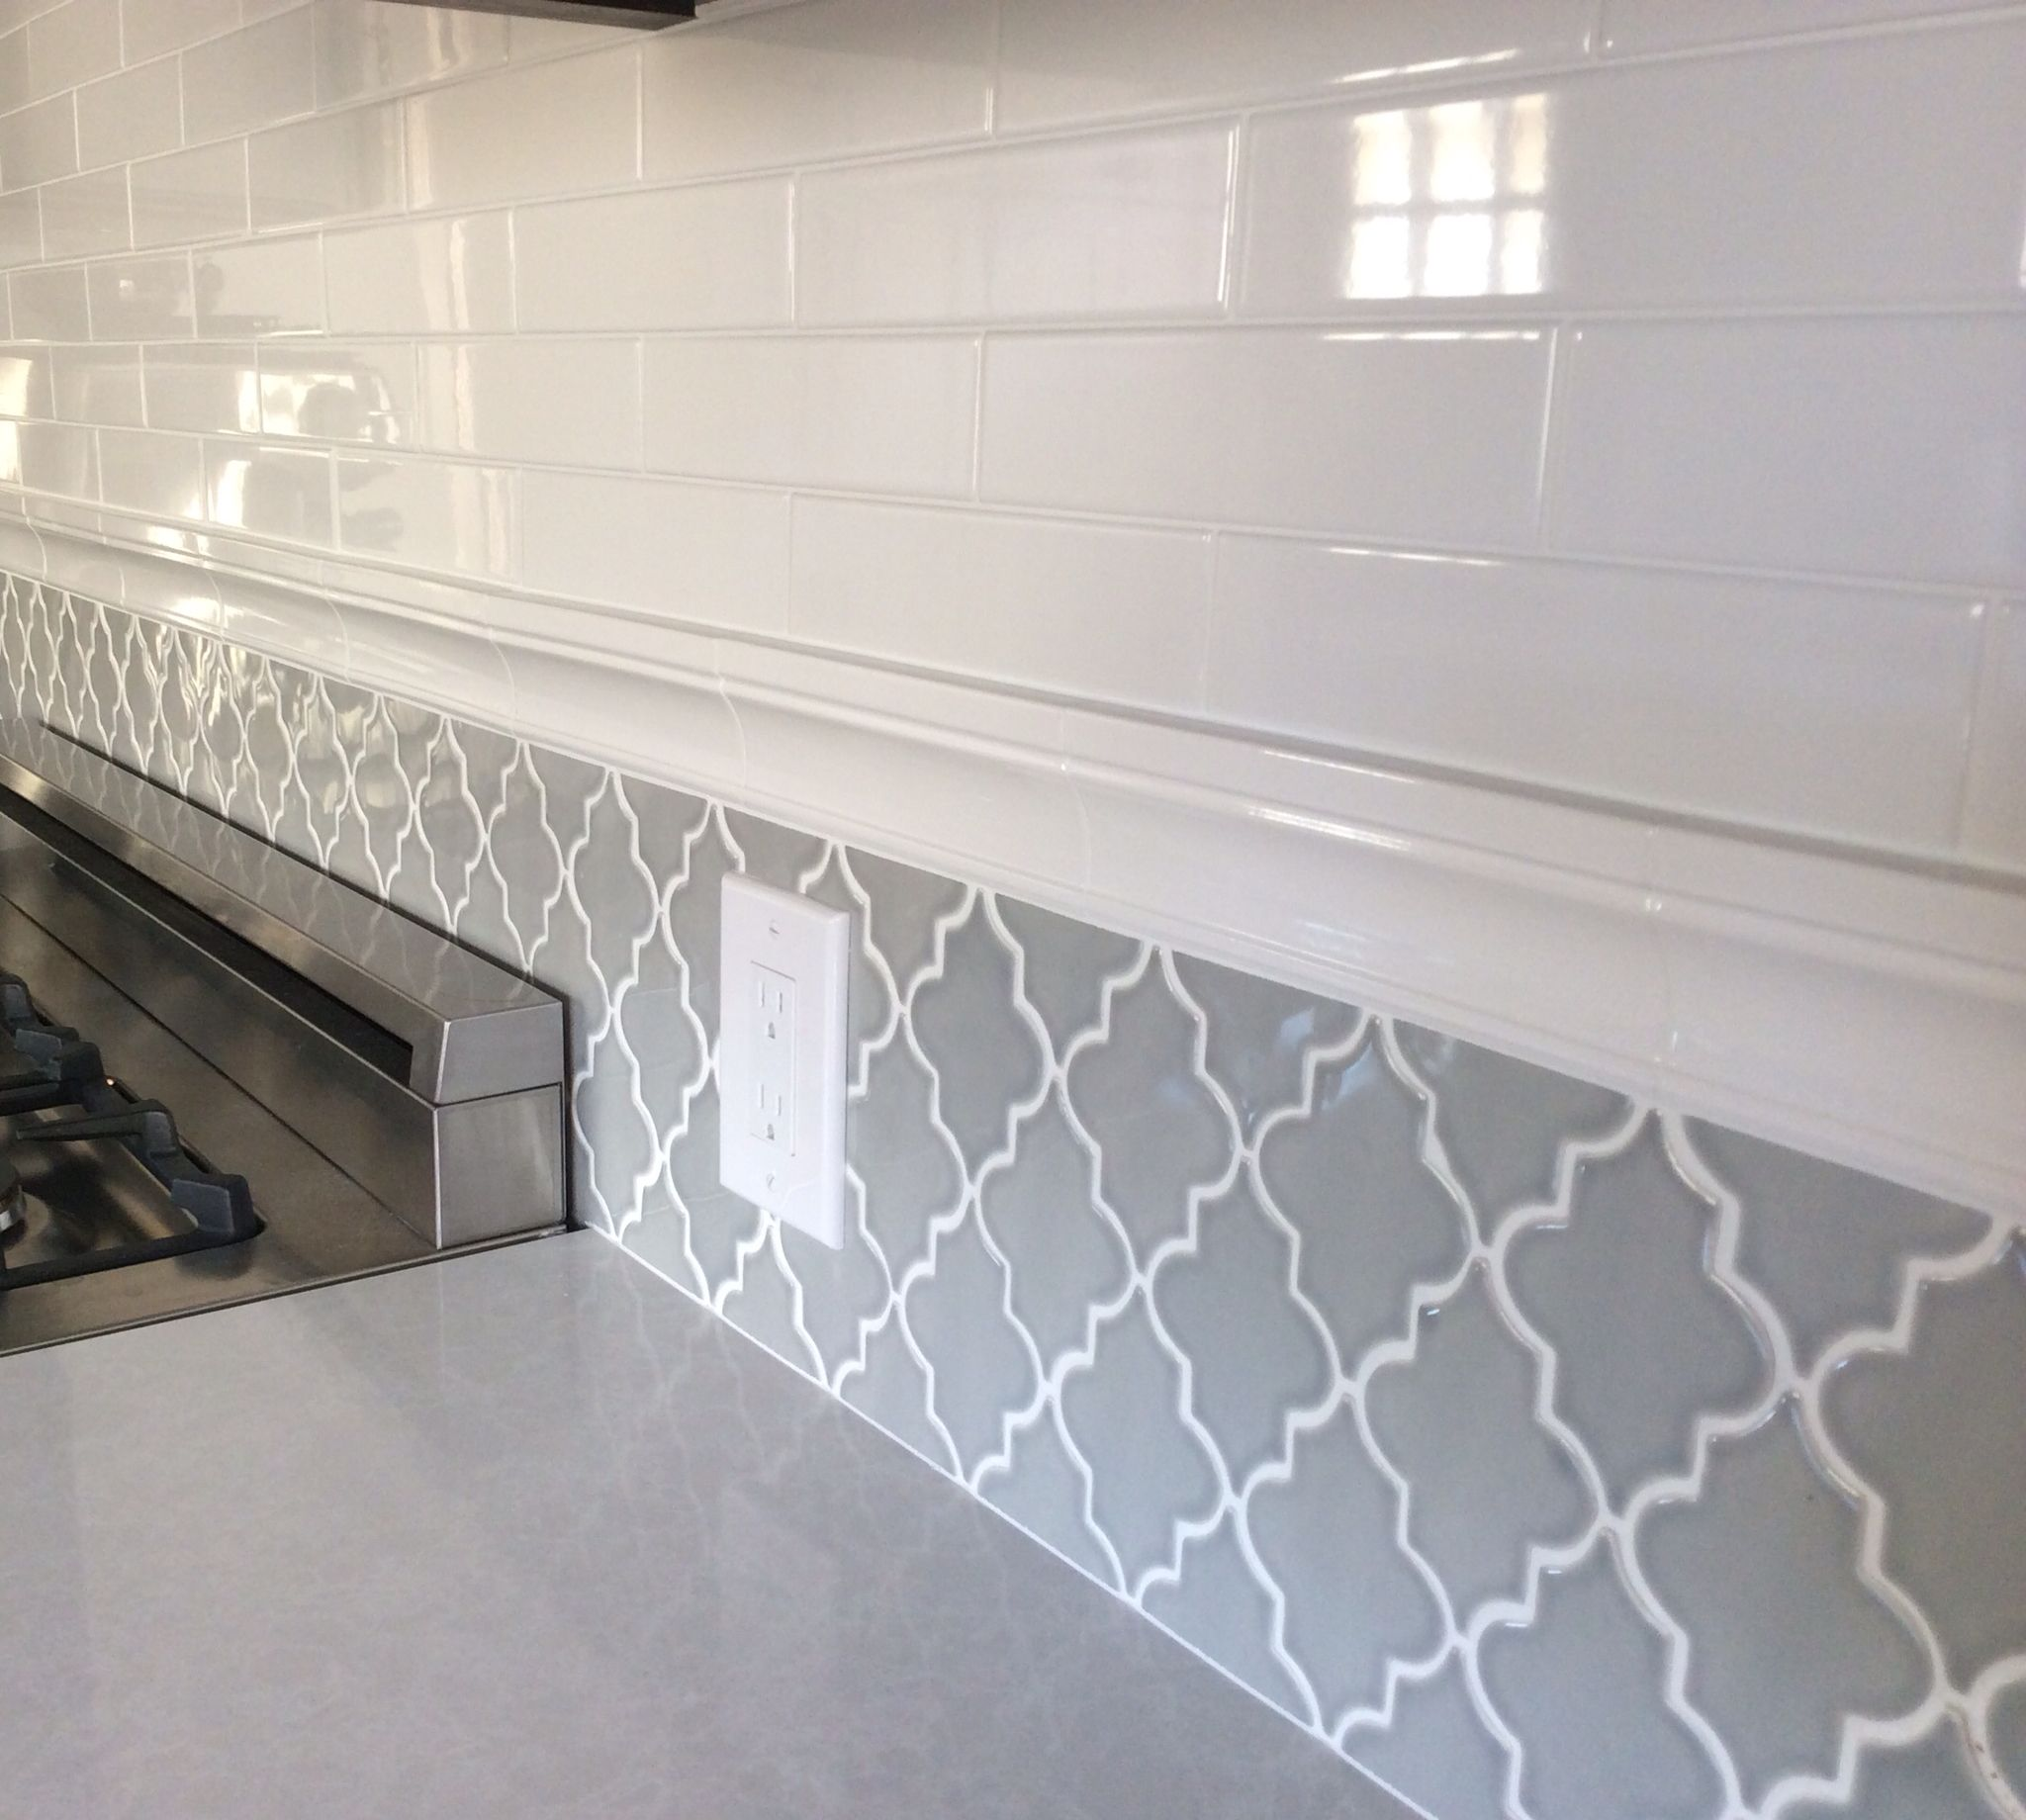 Backsplash In My New Kitchen. Subway Tiles And Arabesque